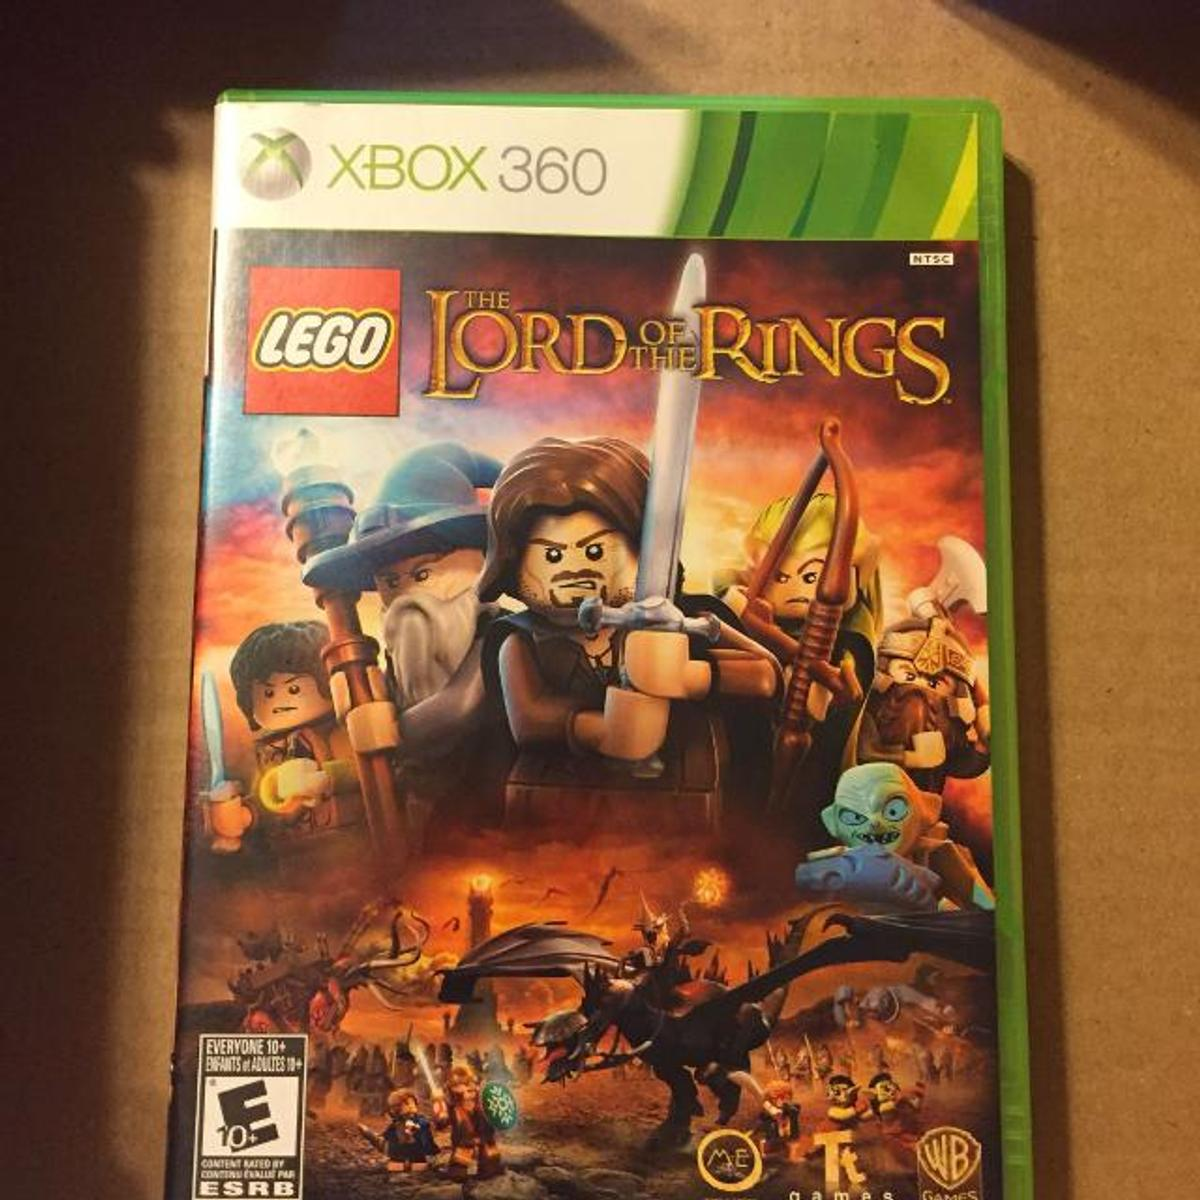 Lego lord of the rings/ xbox360 game /the disc looks fresh condition  Lord of the rings Lego game on xbox 360 The game is like new not one mark on the disc  100% working  £7 pound cash Come and collect or I can post it's all up to you